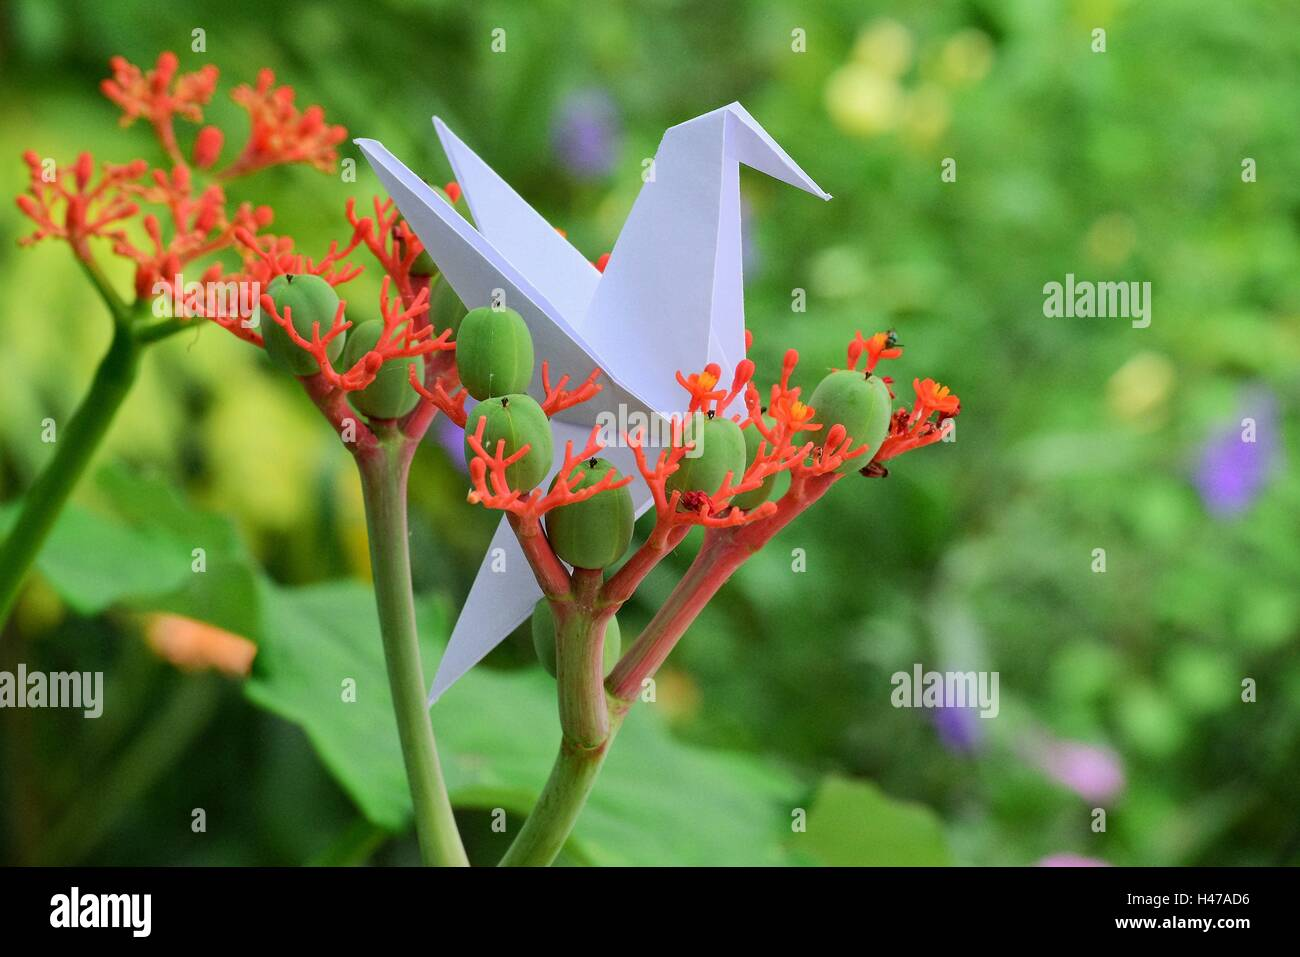 Origami hummingbird and crane on beautiful flowers in full spring in a litle garden. - Stock Image